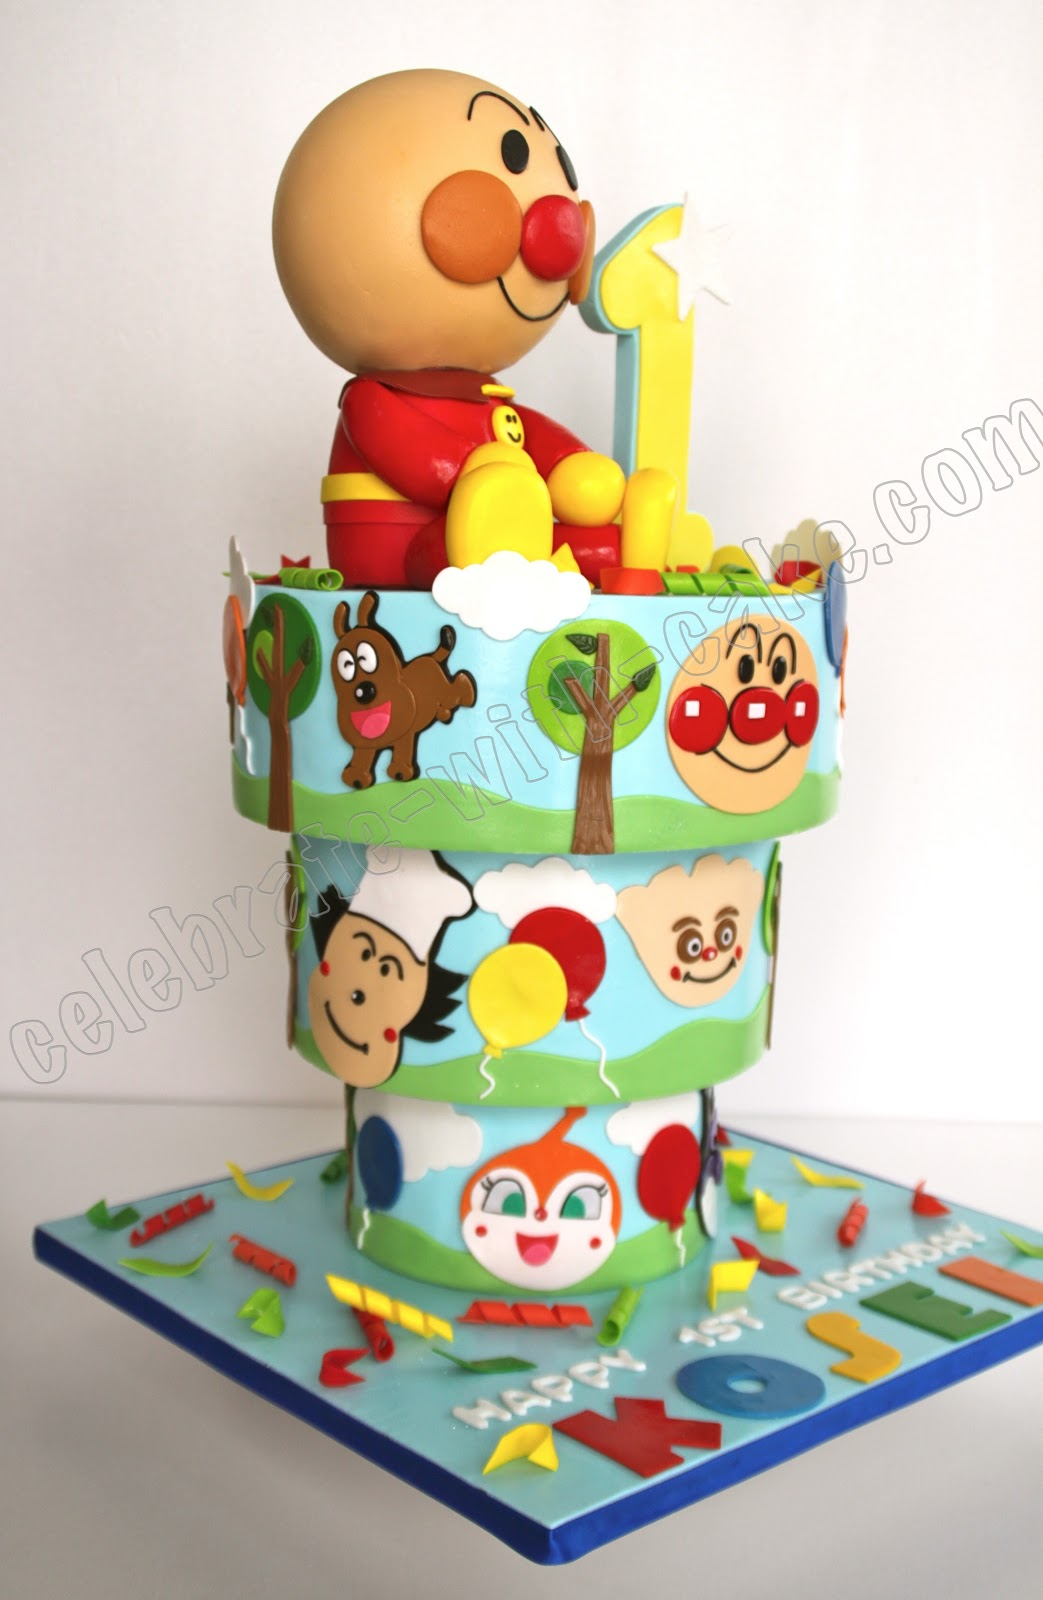 Celebrate With Cake Upside Down Anpanman Cake